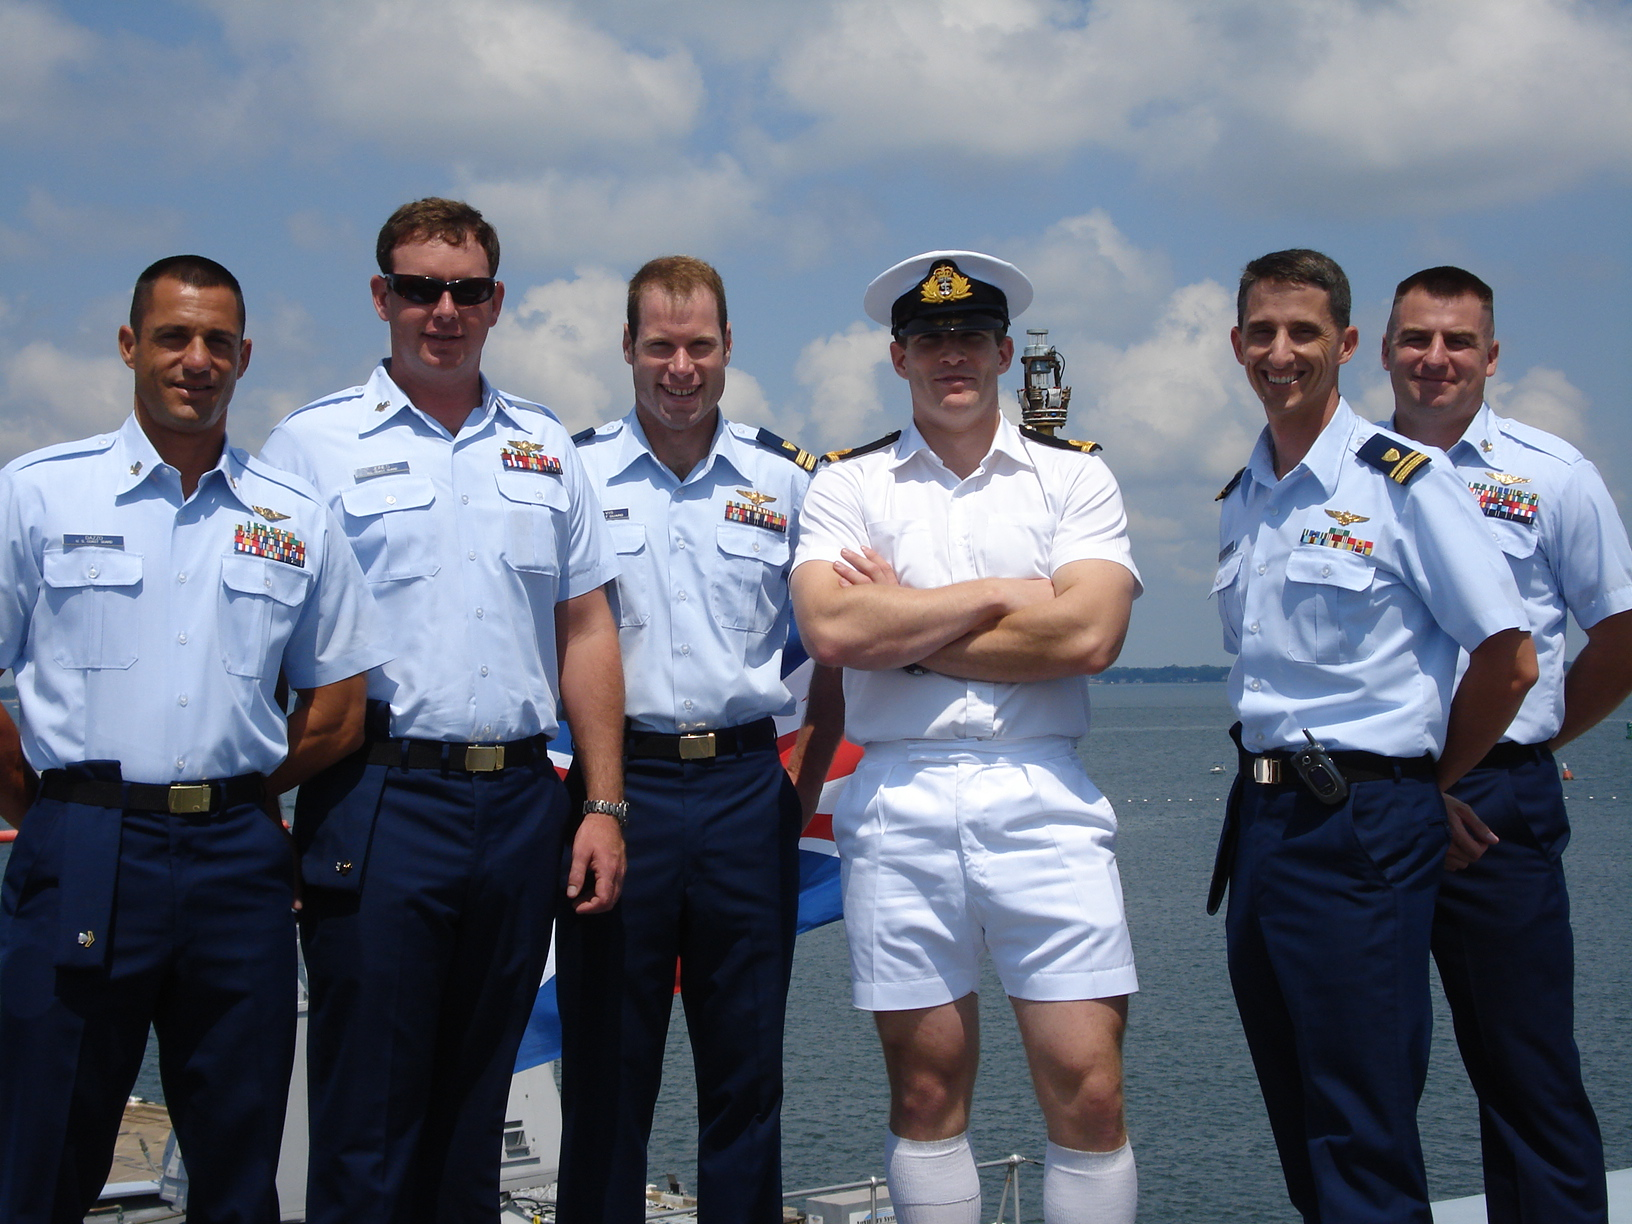 US Coast Guard crews honored by her Majesty' services after saving ...